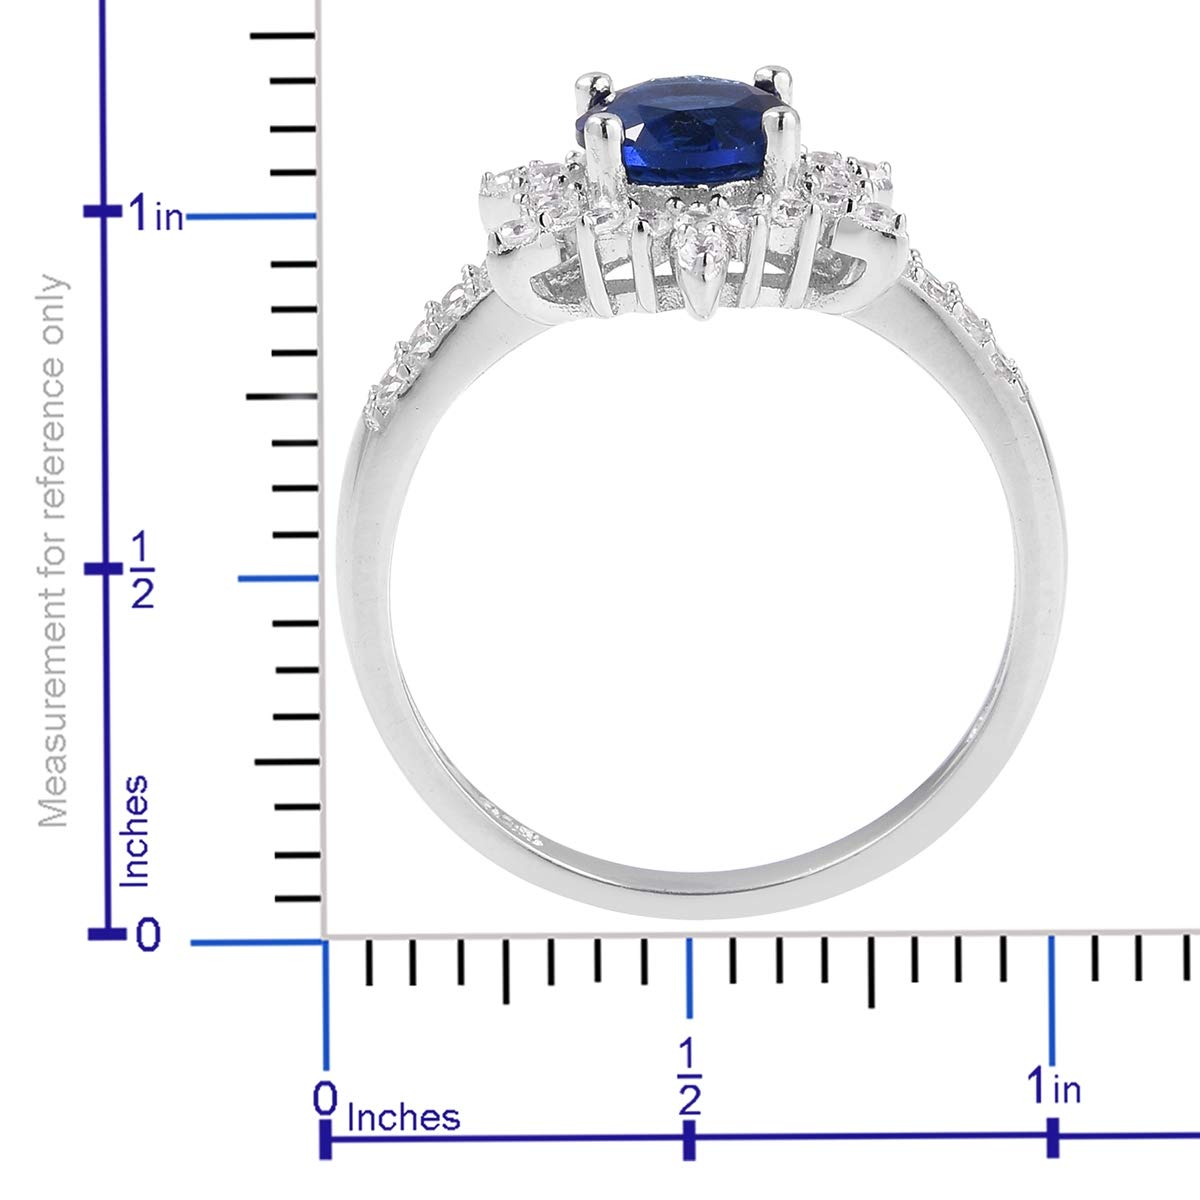 Statement Ring 925 Sterling Silver Round White Cubic Zirconia CZ Jewelry for Women Ct 0.7